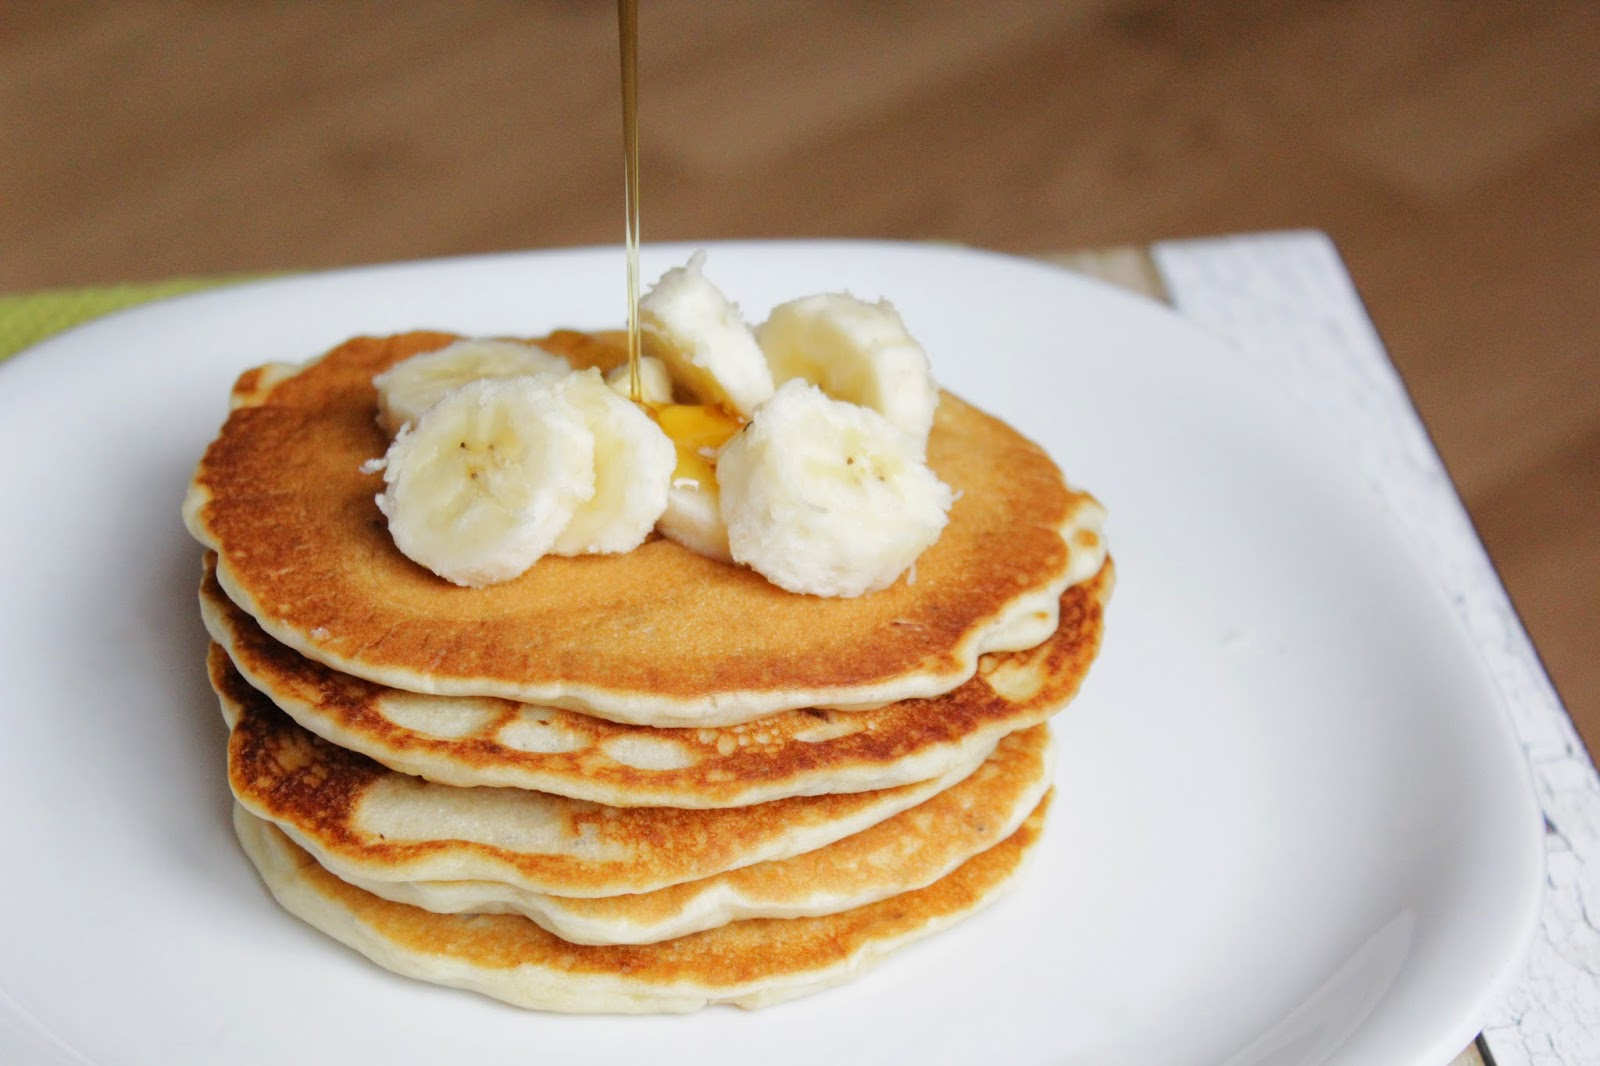 Uncategorized Pancake Pillow 127 puffy pillow pancakes american fortnight vegan three six five one thing that divides nations is what the definition of a pancake actually to british thin item in whic